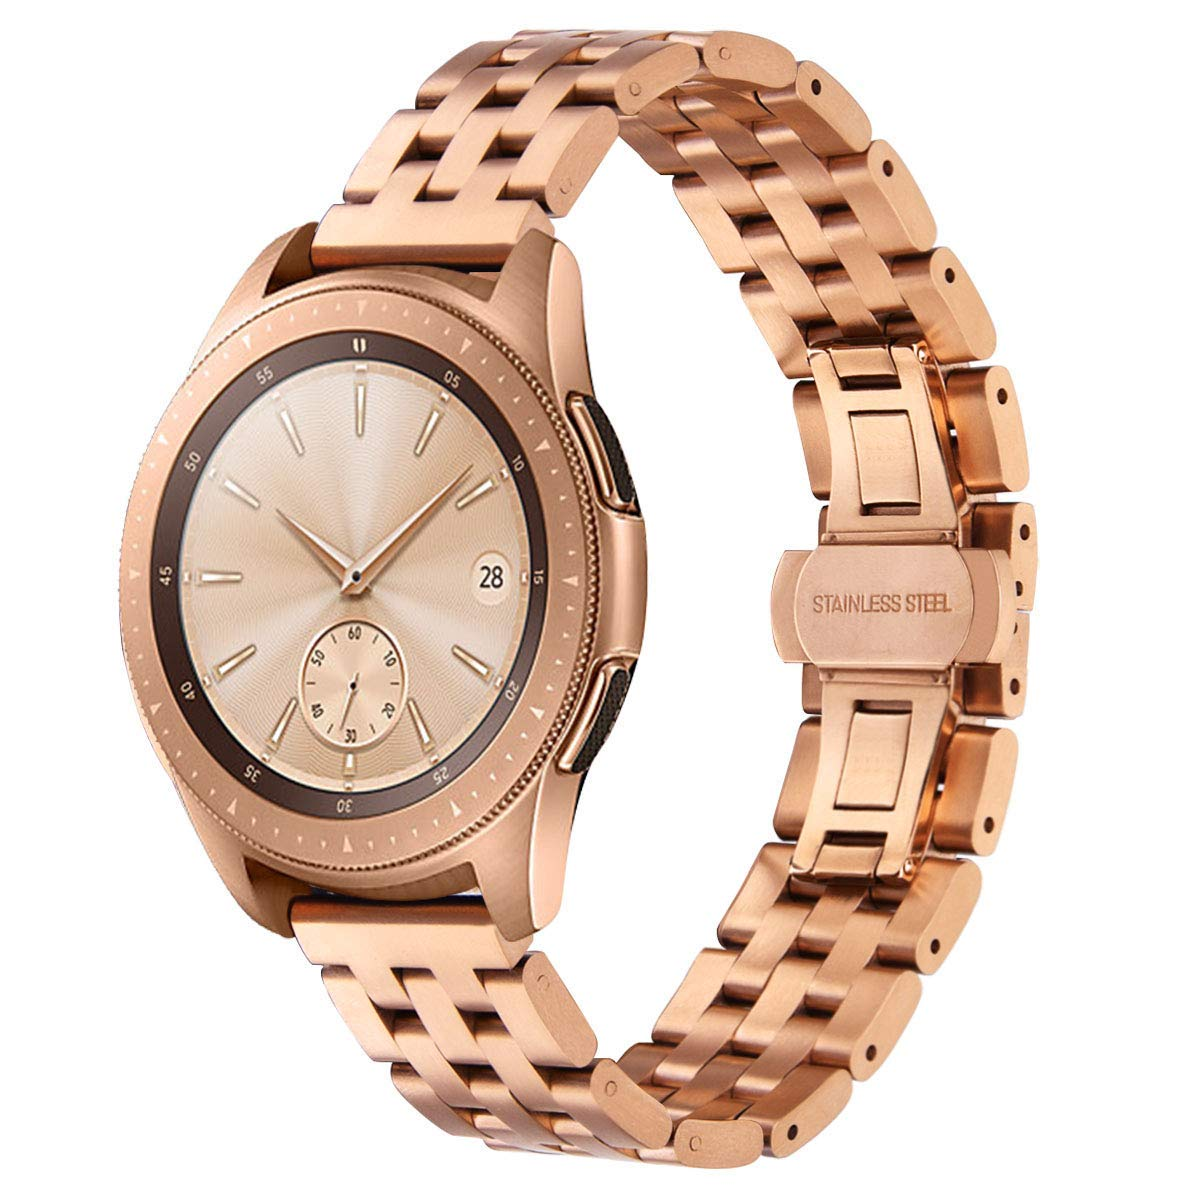 VIGOSS Compatible Galaxy Watch 42mm Band Rose Gold,Stainless Steel Solid Metal Watch Band for Samsung Galaxy Watch 42mm Smartwatch SM-R810(42mm,Rose Gold)